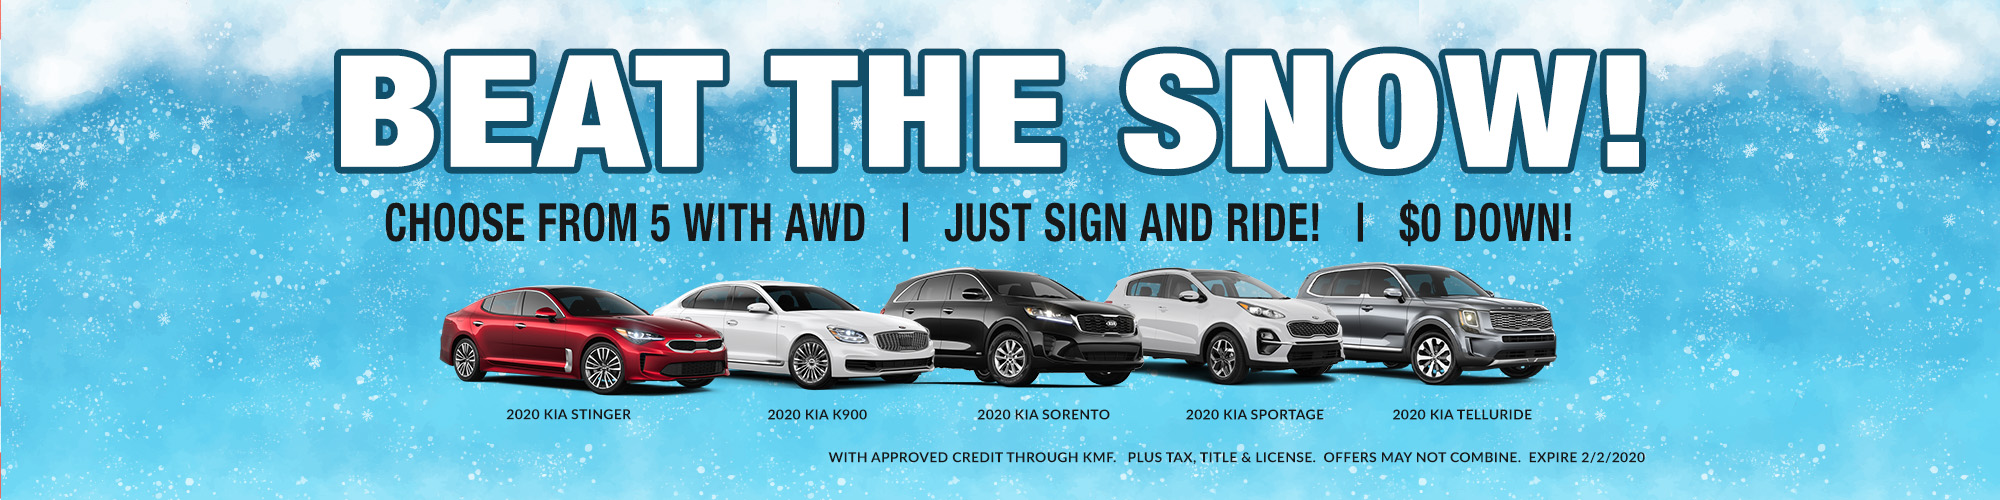 BEAT THE SNOW! CHOOSE FROM 5 WITH AWD- JUST SIGN AND RIDE- $0 DOWN!